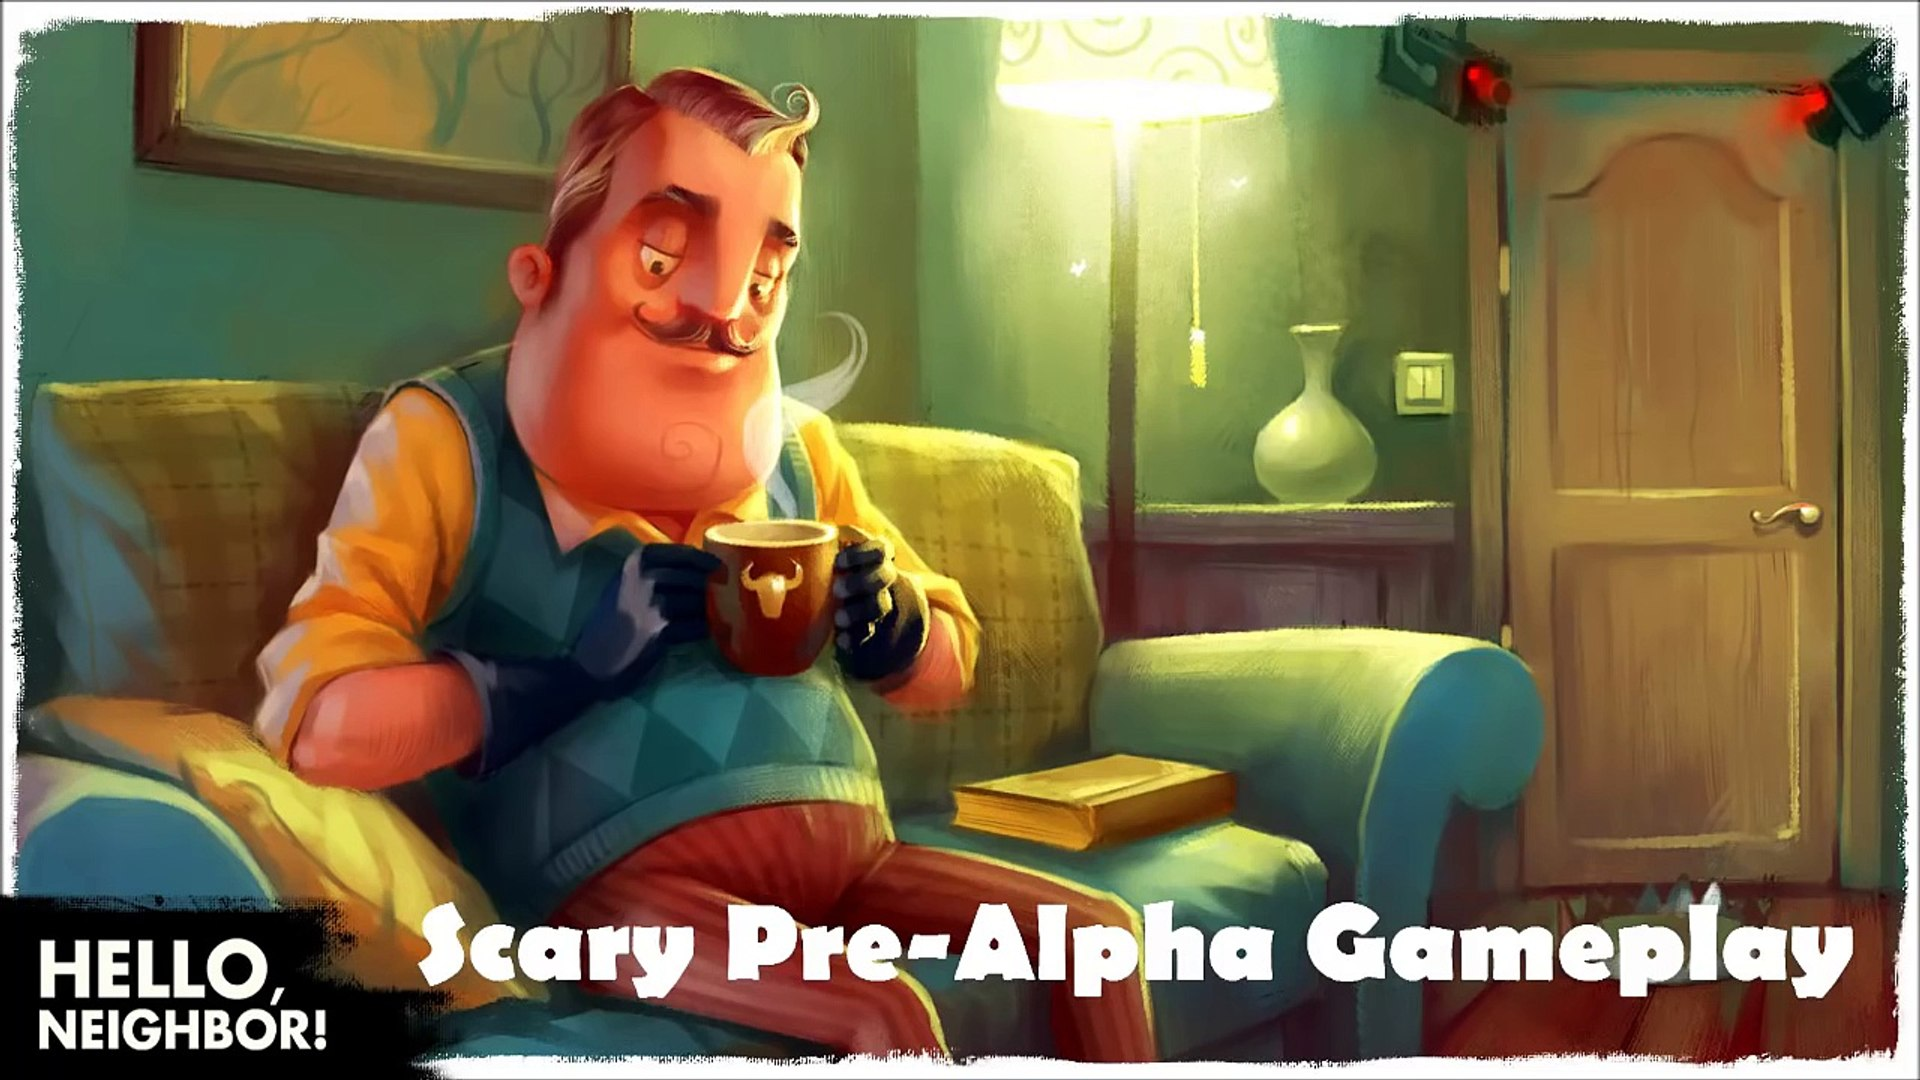 Hello Neighbor - Scary Pre-Alpha Gameplay